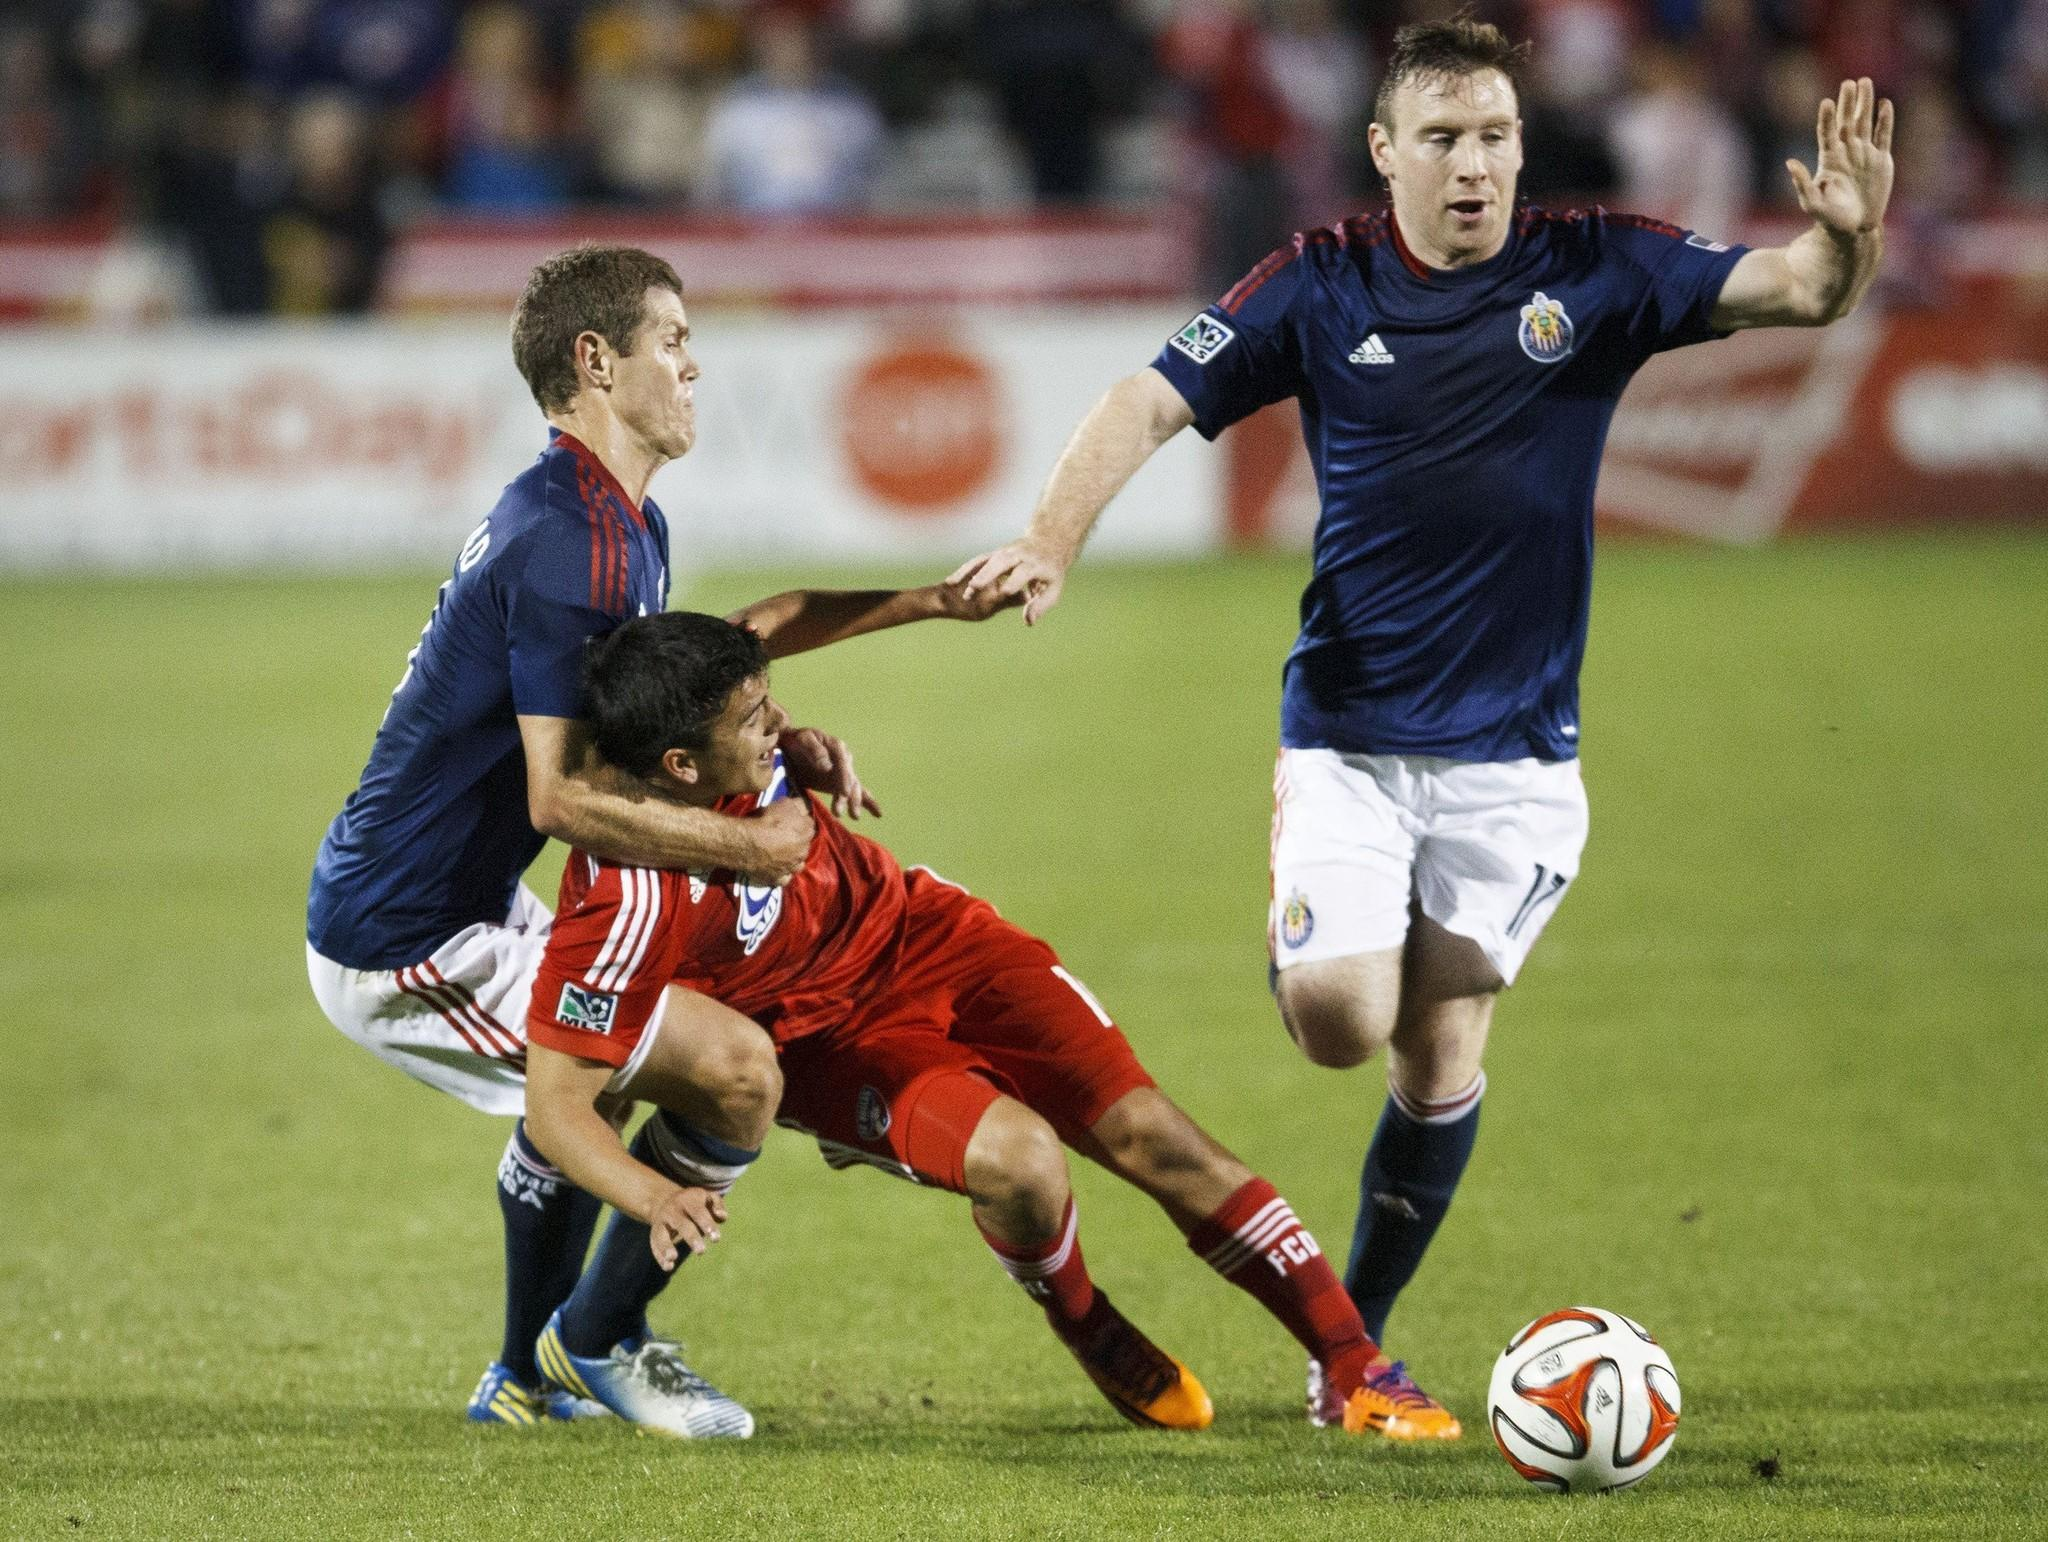 Chivas USA's Thomas McNamara, right, goes for the ball as his teammate Tony Lockhead, left, pulls down FC Dallas' Mauro Diaz during a match on March 22 at Toyota Stadium.